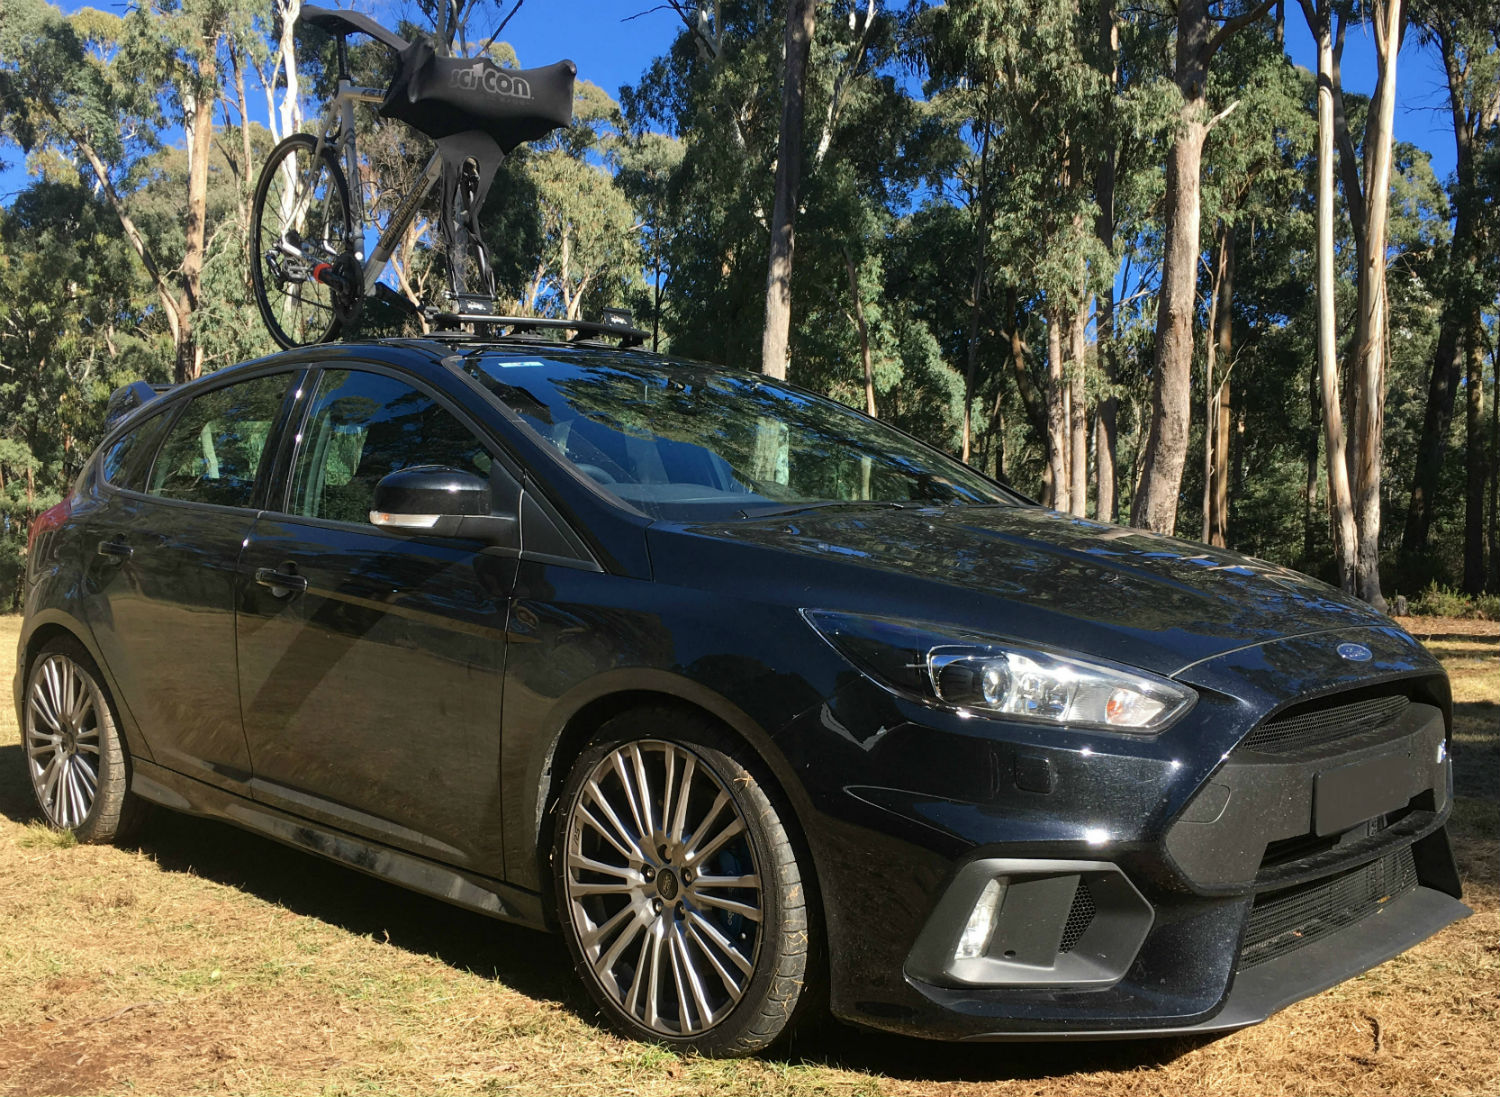 Ford Focus Rs Bike Rack Seasucker Down Under